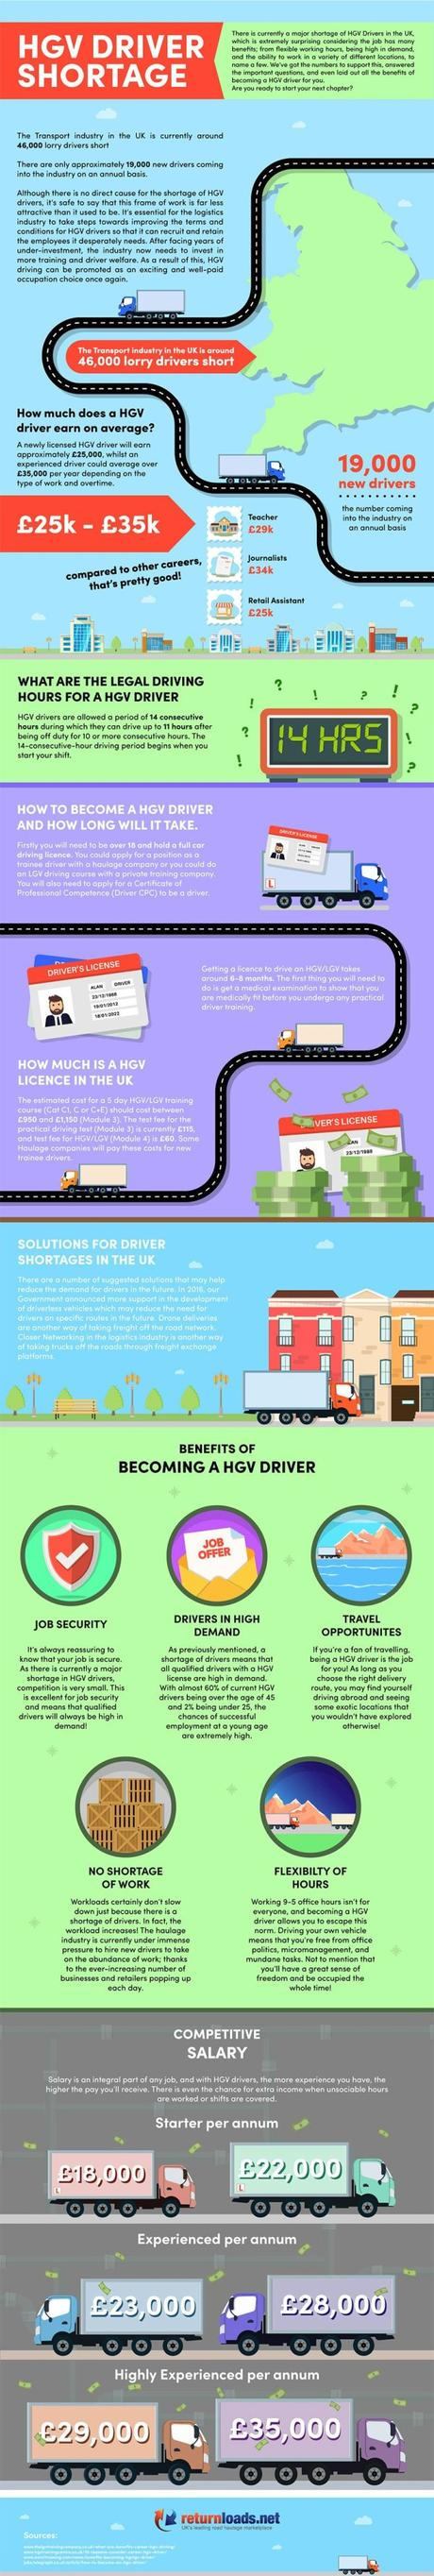 HGV driver shortage - Infographic